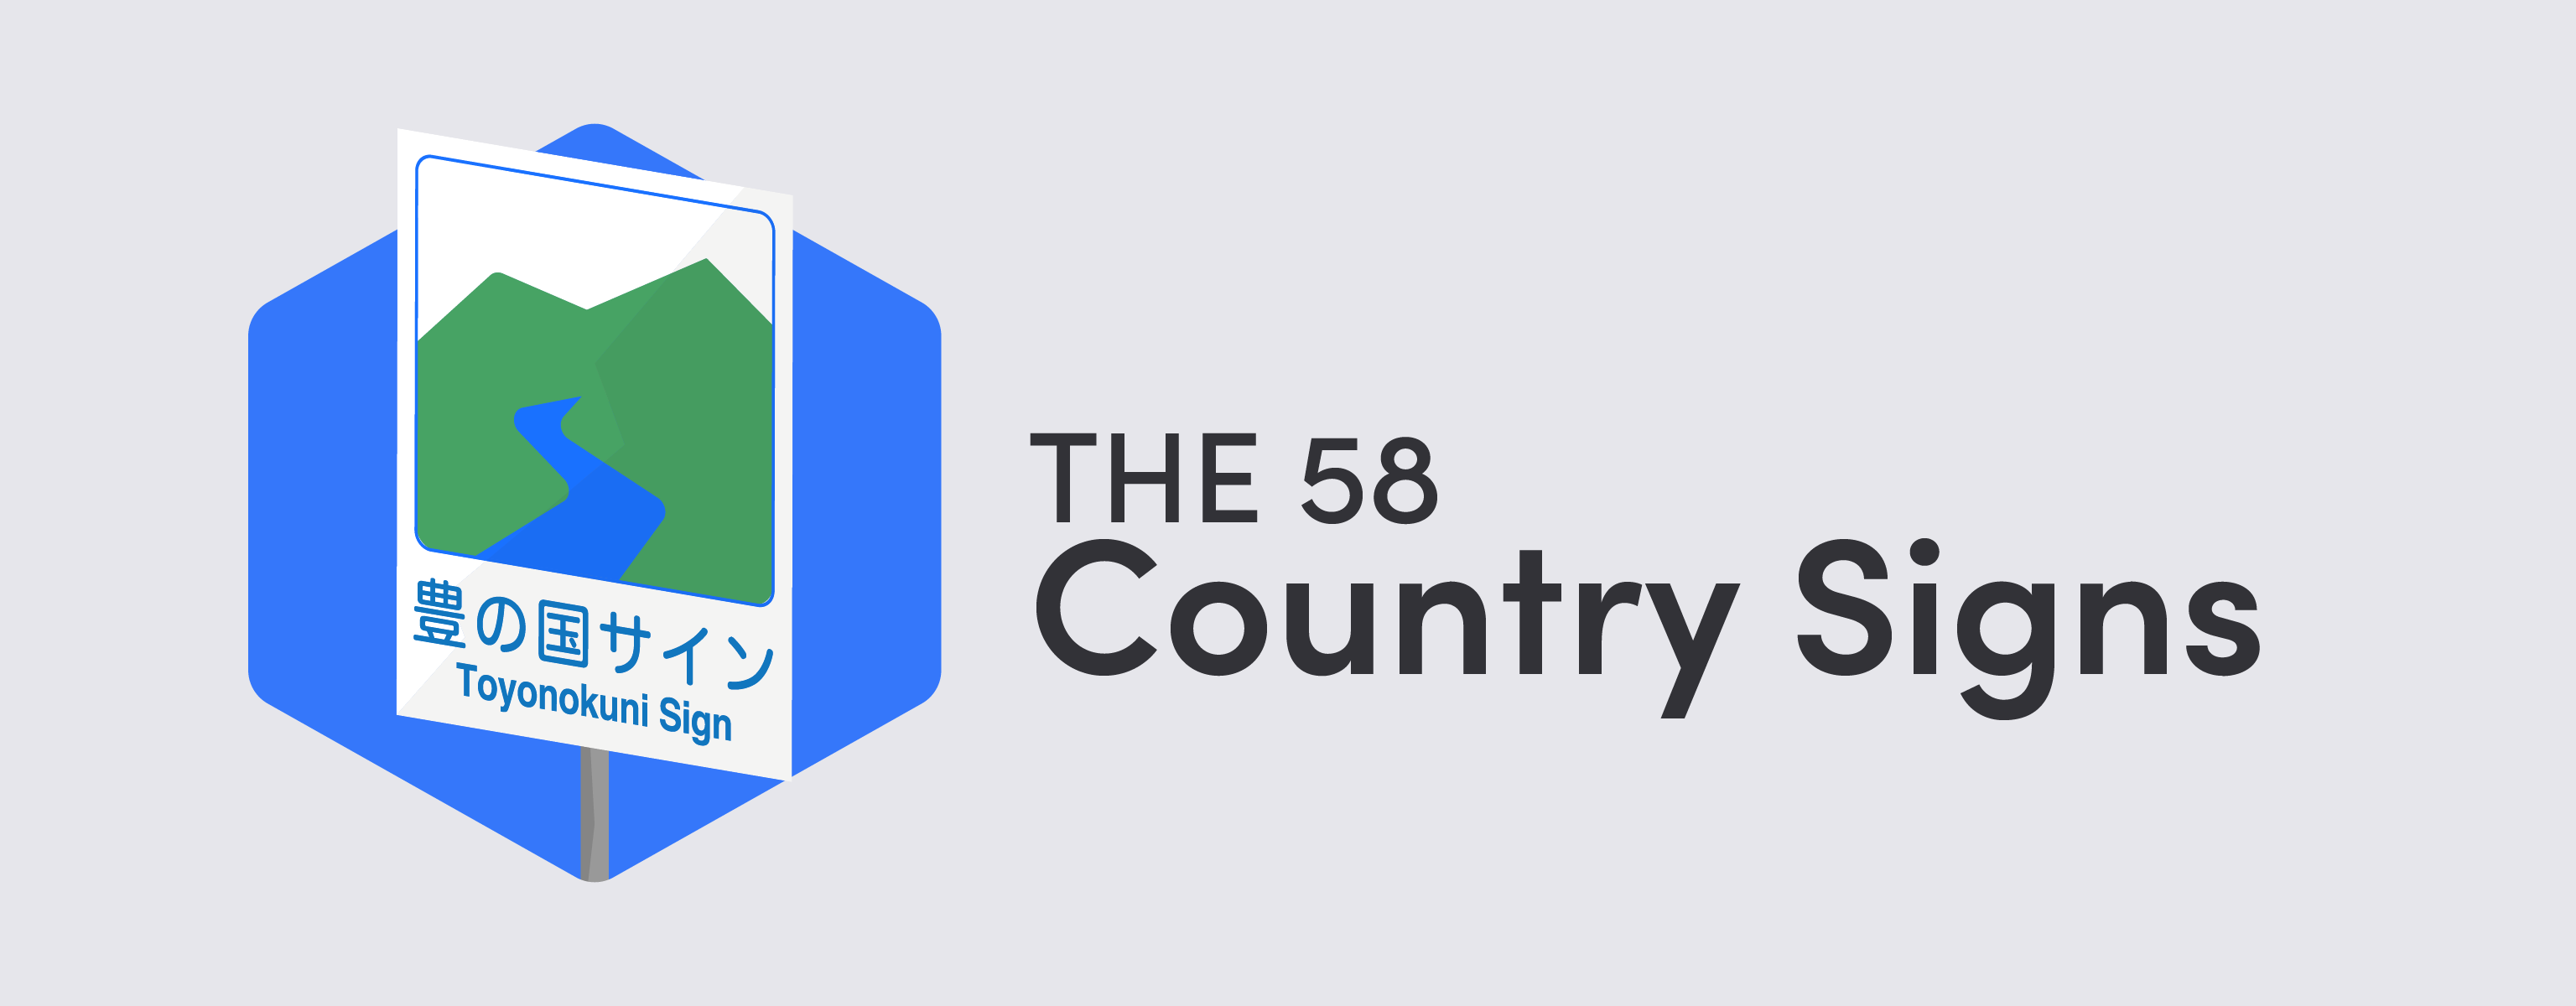 THE 58 COUNTRY SIGNS